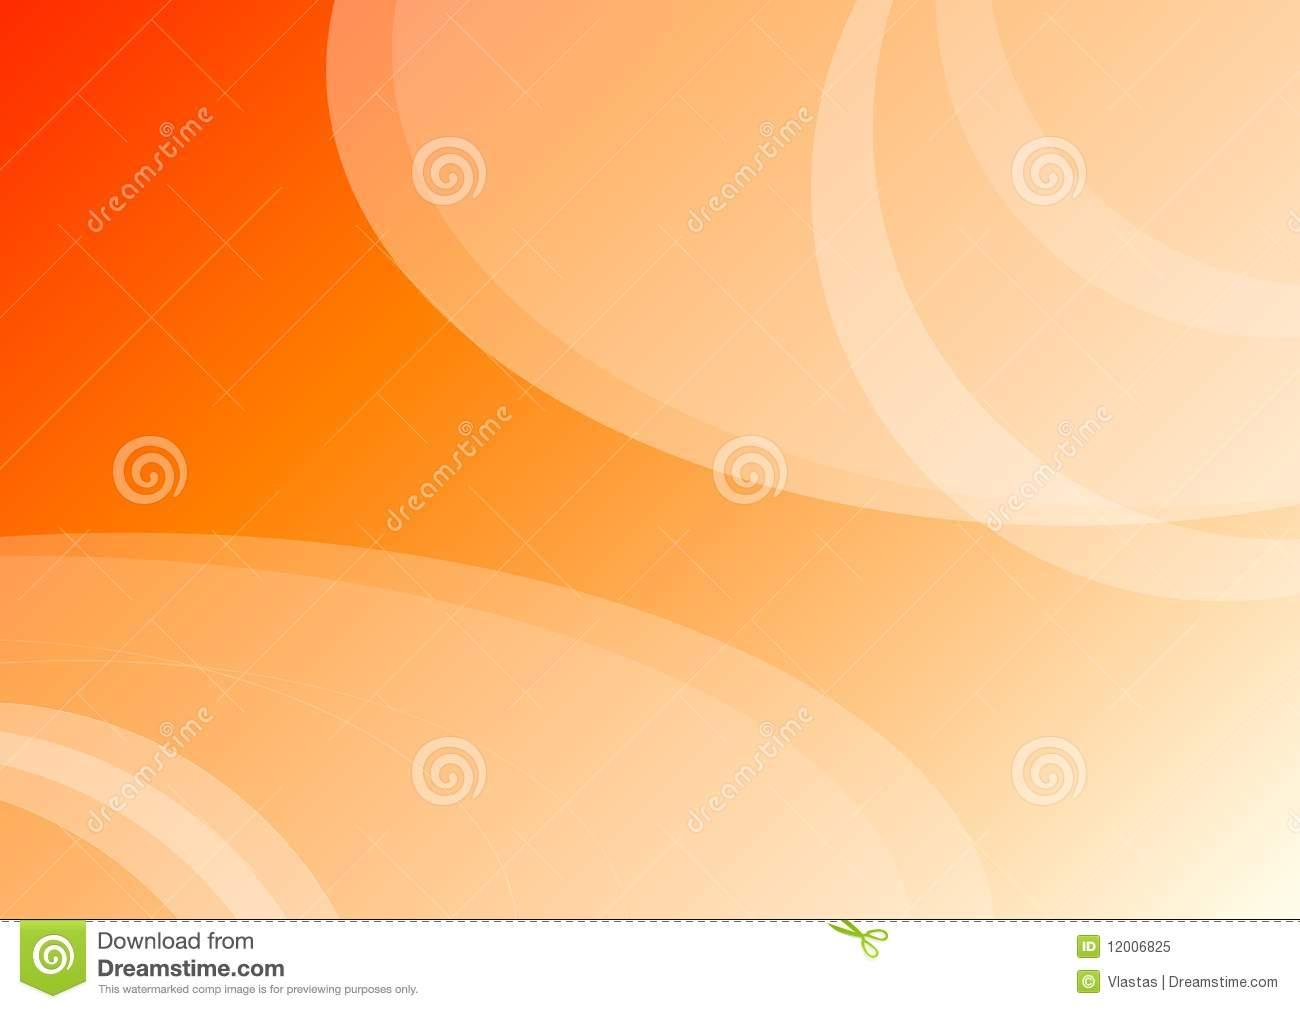 Simple Background Royalty Free Stock Photo - Image: 12006825